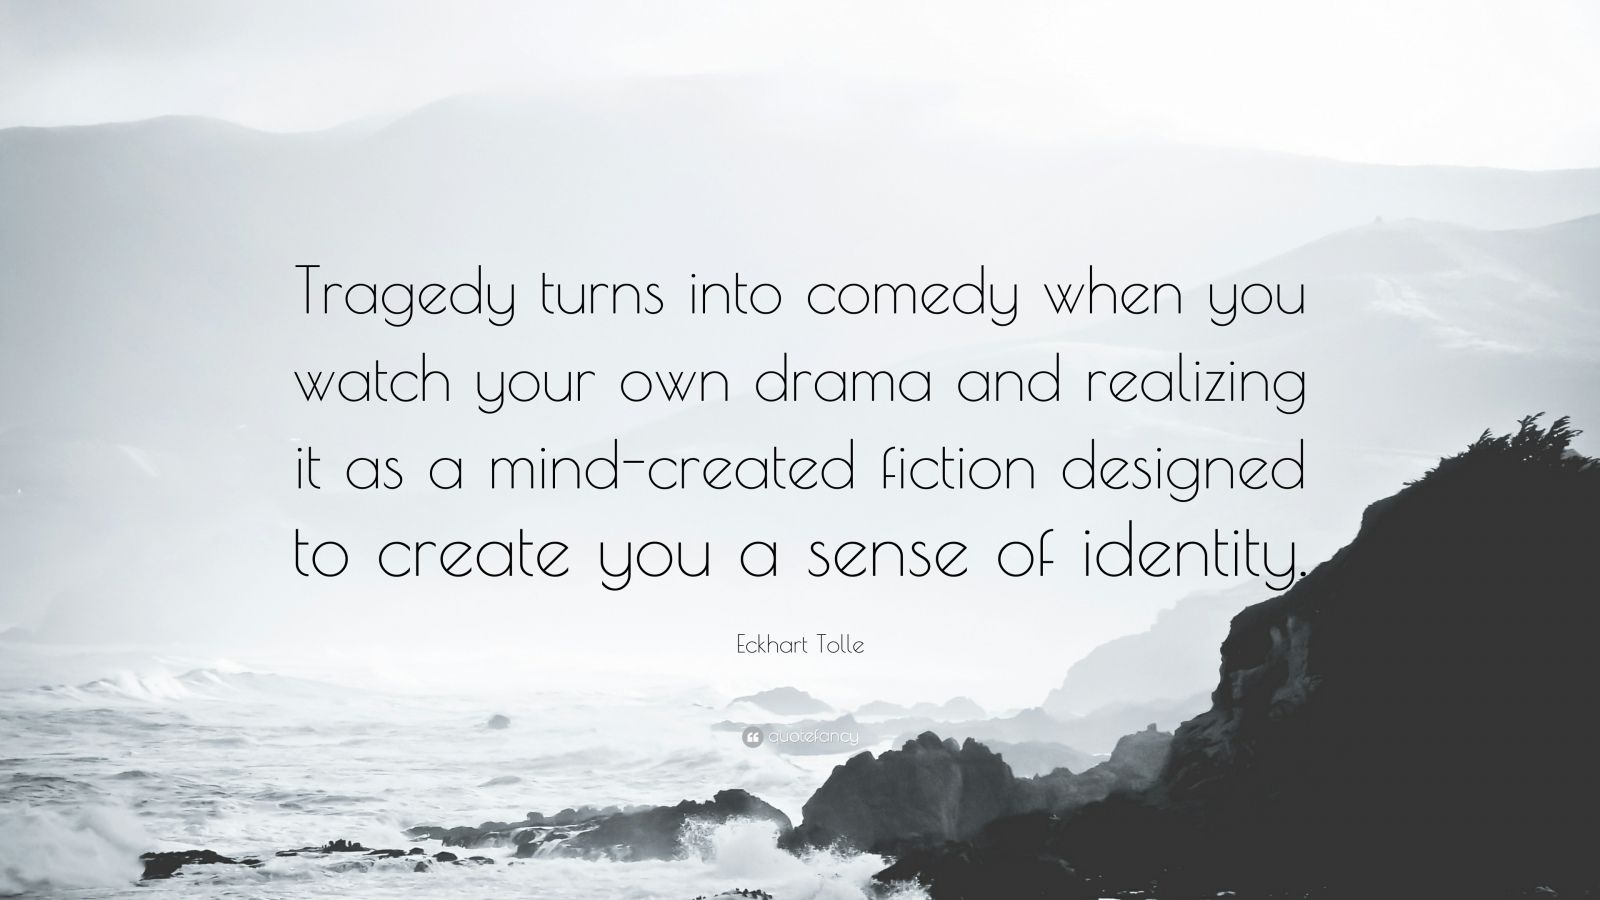 """Eckhart Tolle Quote: """"Tragedy turns into comedy when you watch your own drama and realizing it as a mind-created fiction designed to create you a sense of identity."""""""